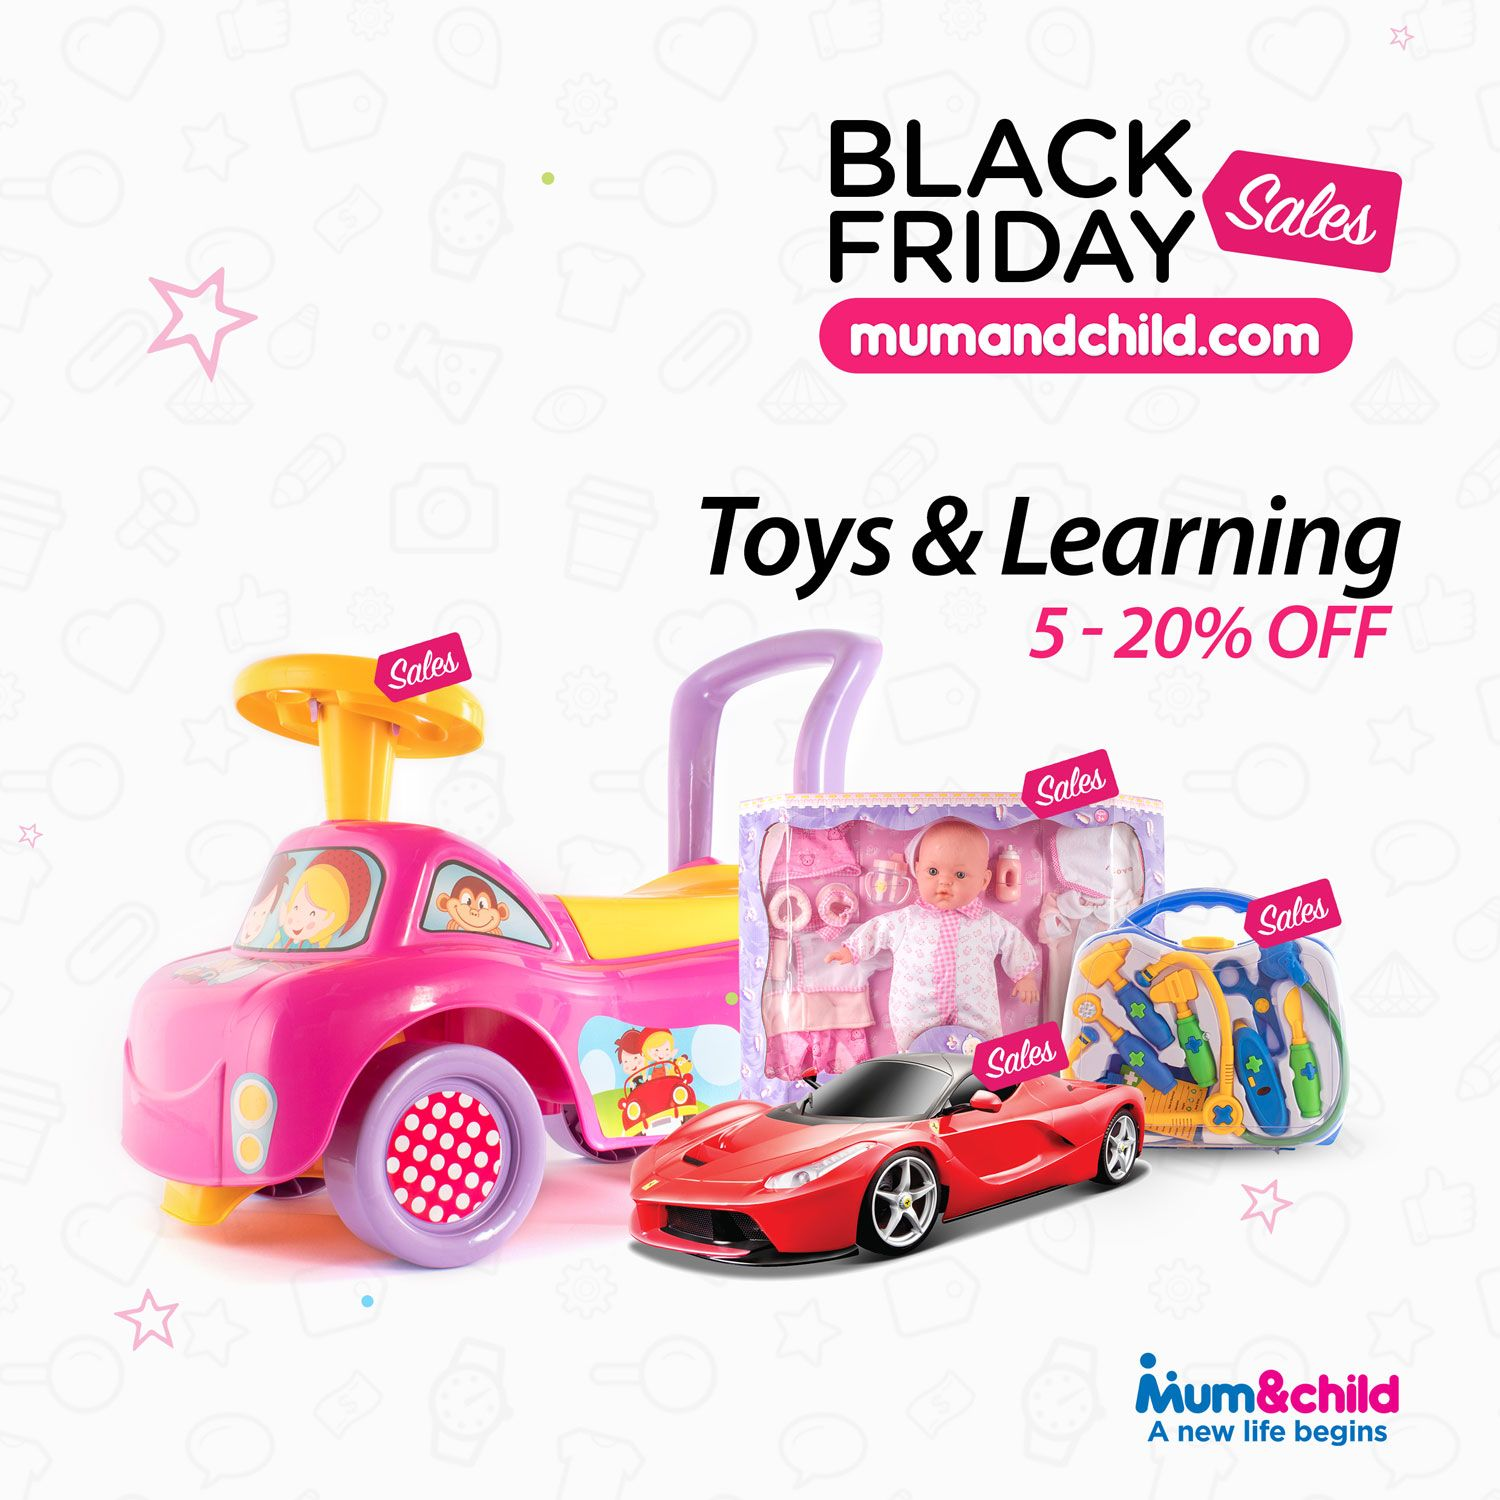 52badc500 Its time to shop for your child